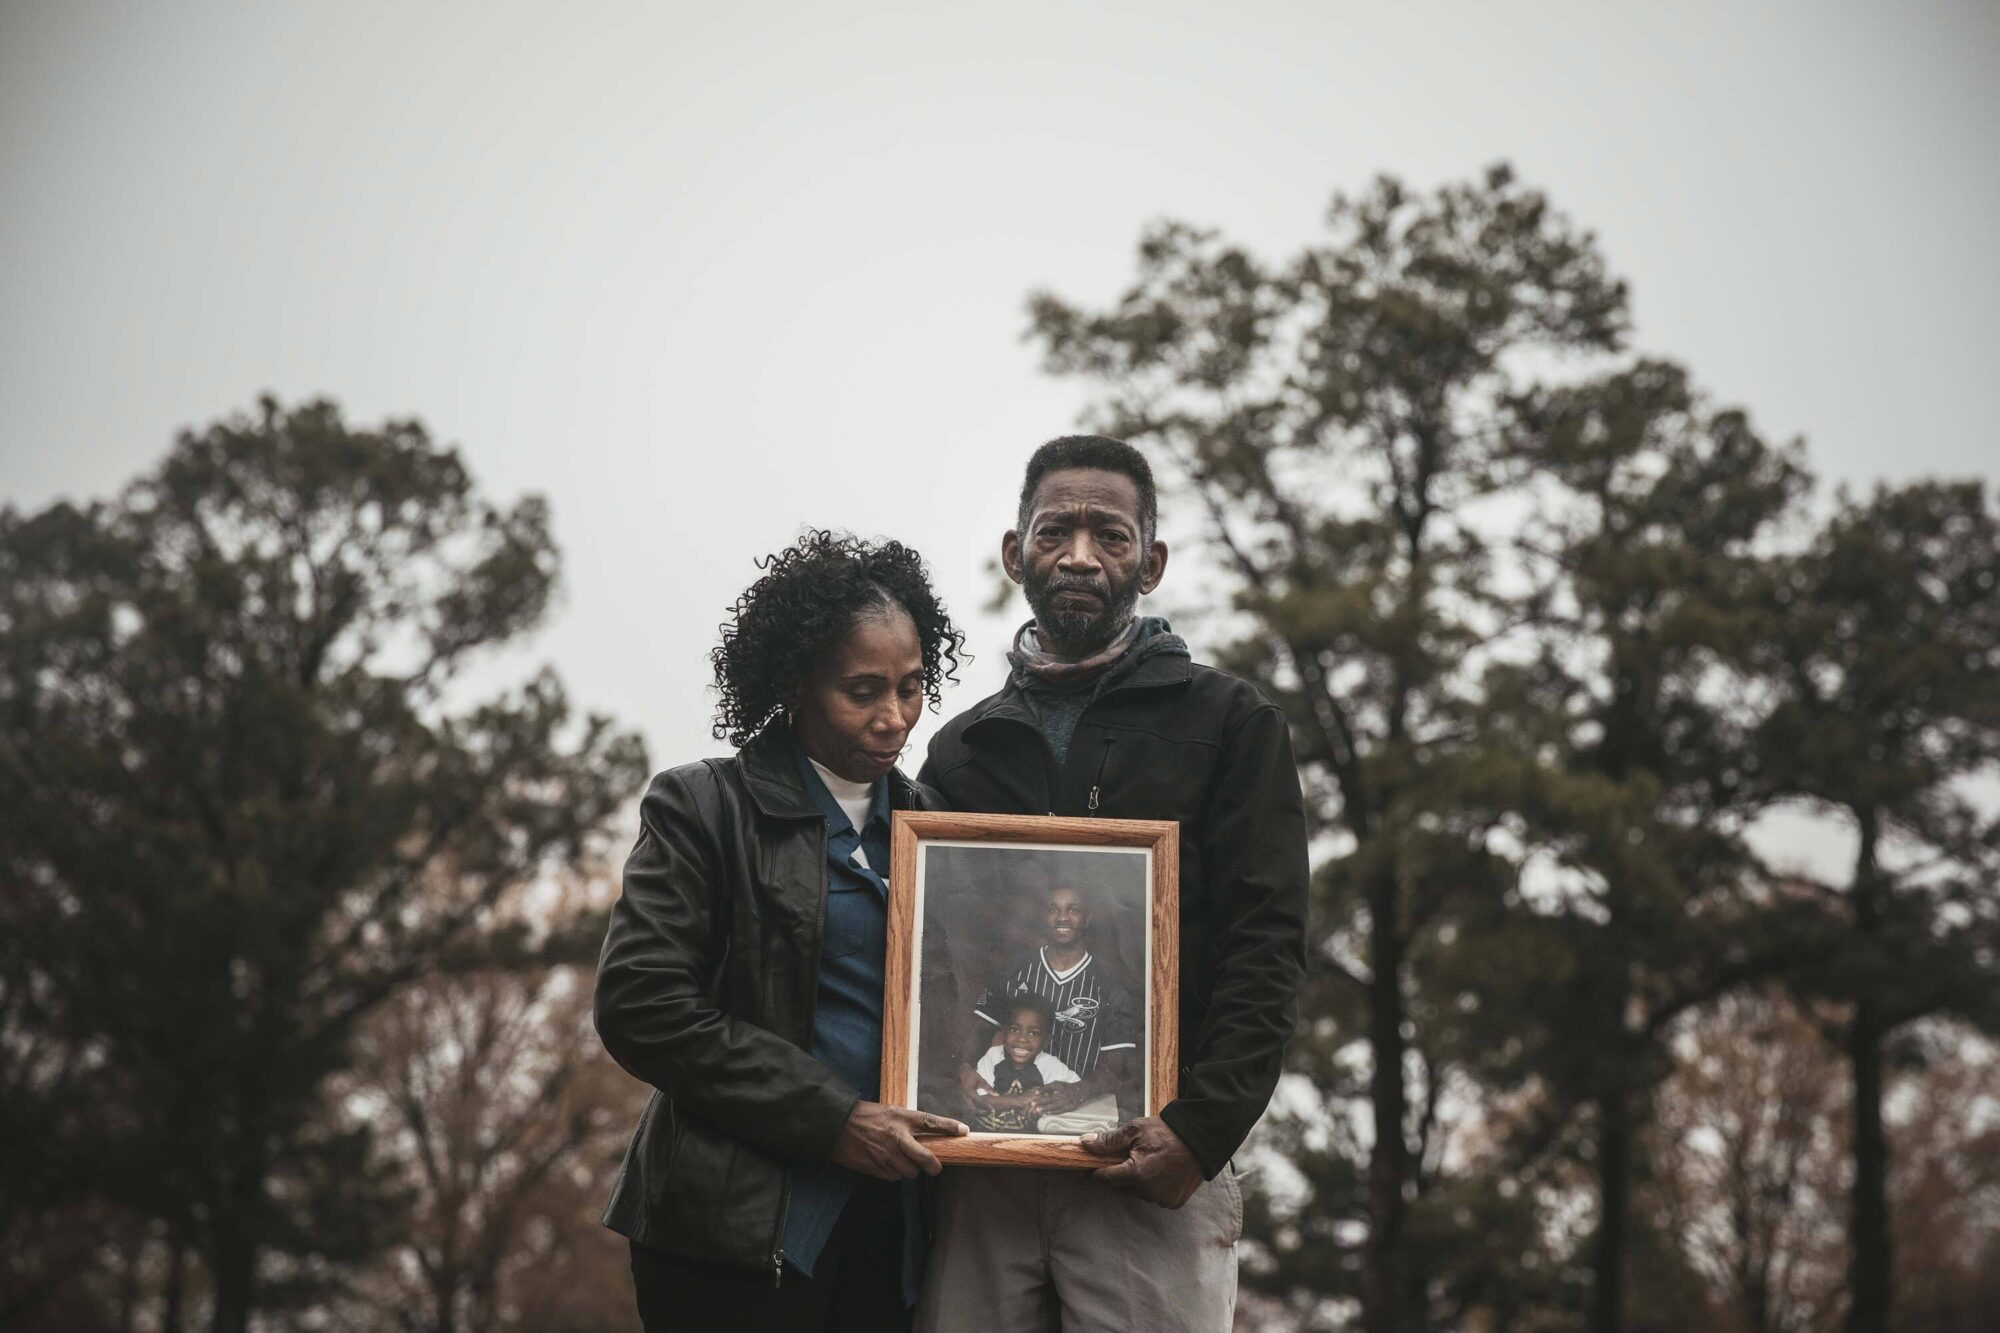 Young's parents near their home in West Memphis. Young was working at the FedEx hub in Memphis when he was struck by a shipping container door. FedEx was fined $7,000 in connection with Young's death, but the penalty was later reduced.